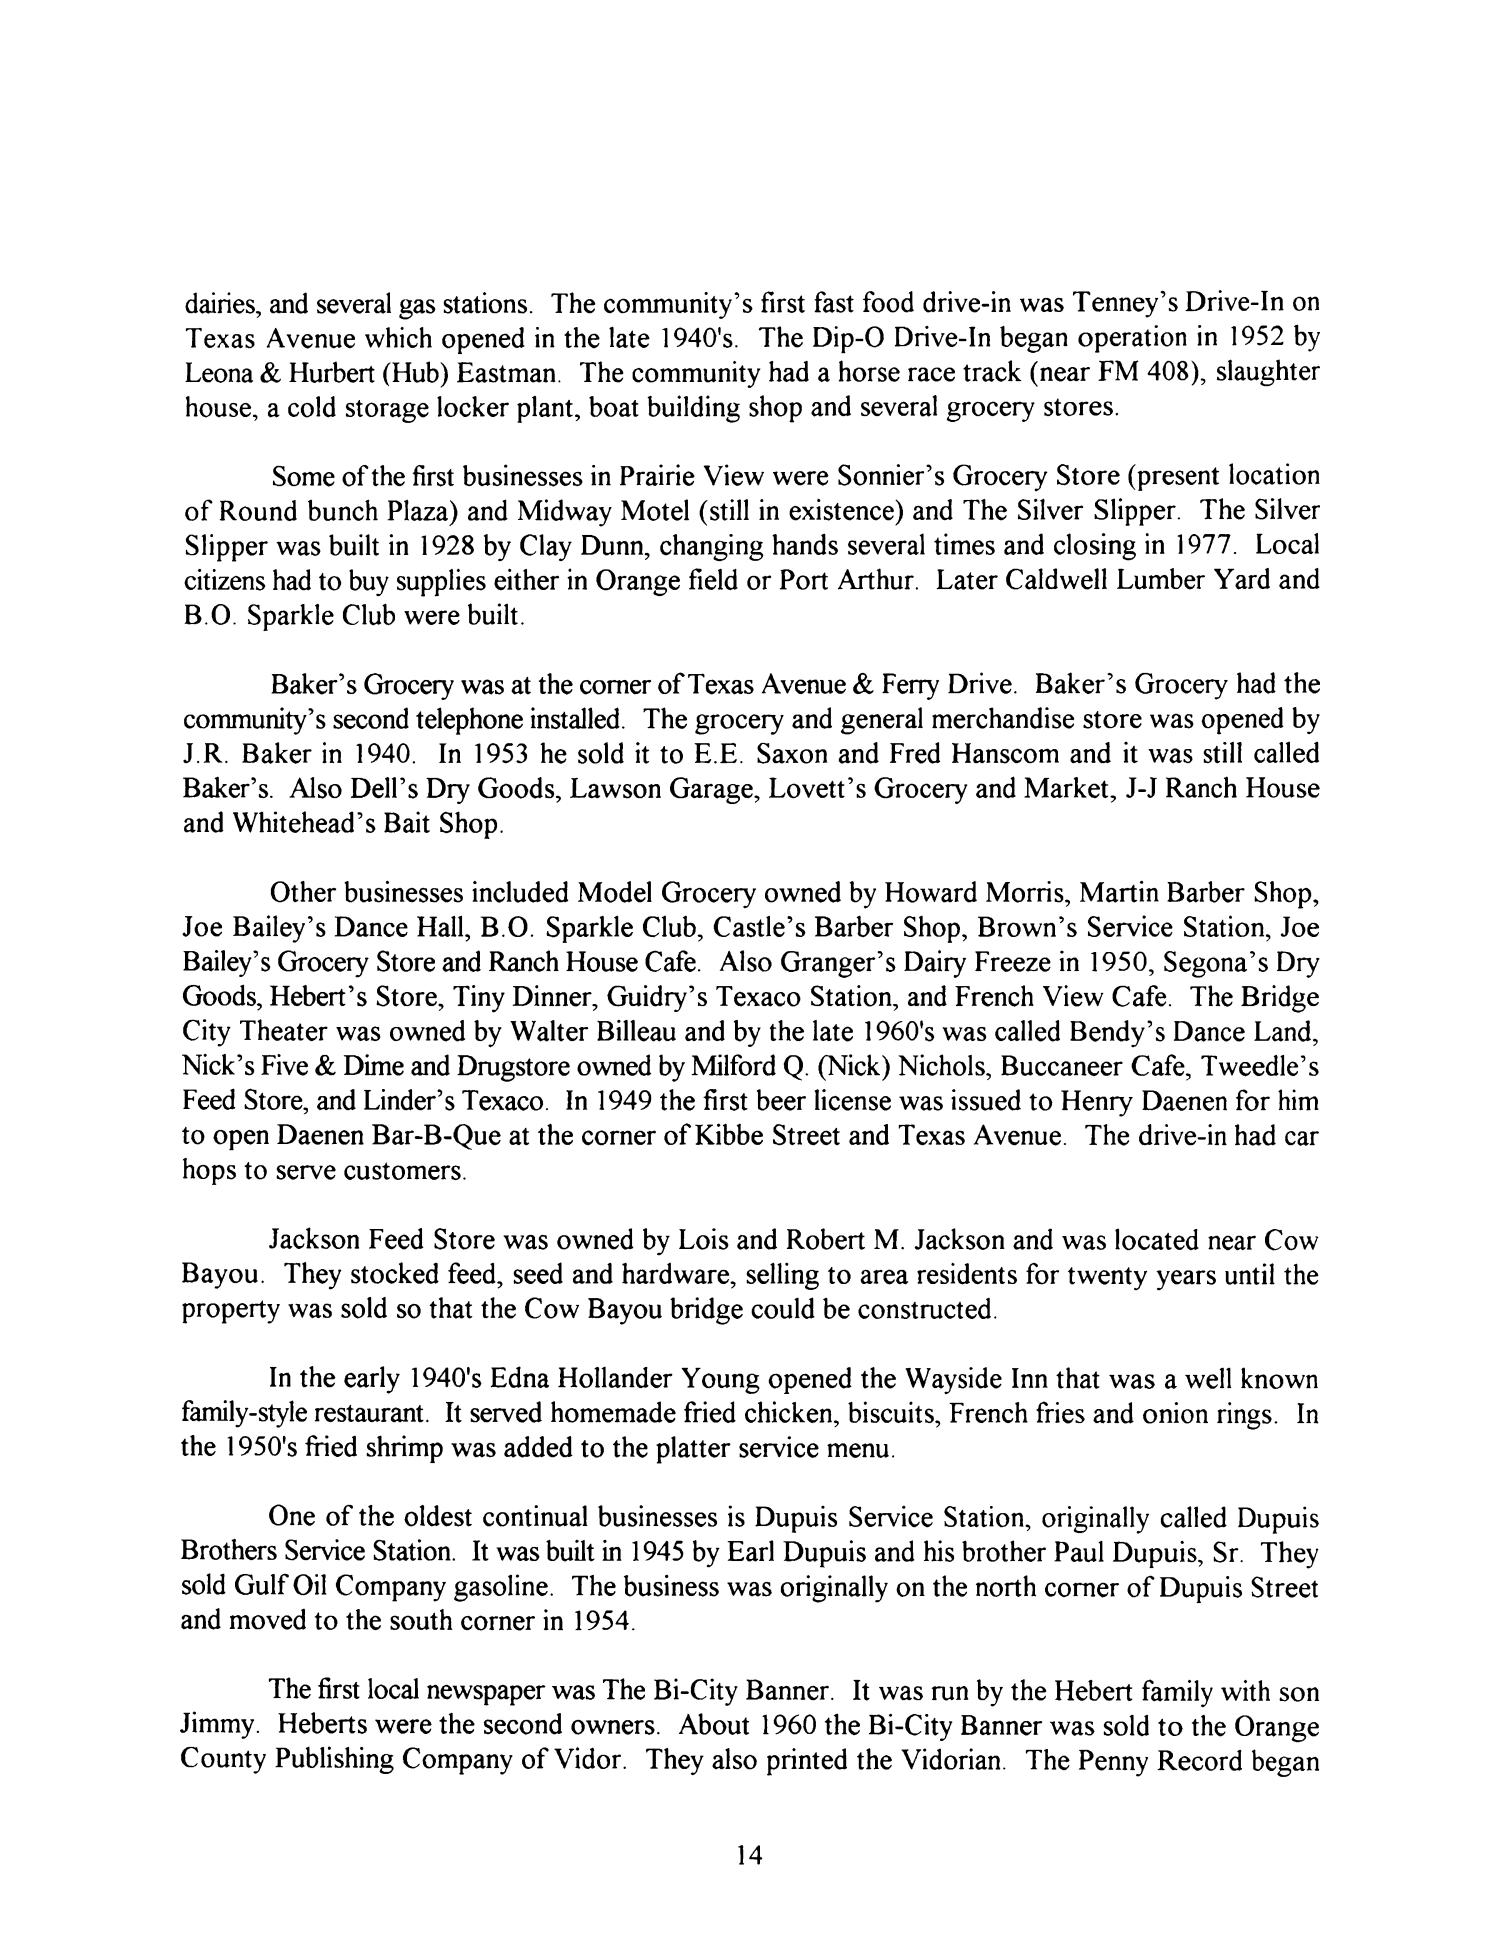 Las Sabinas, Volume 24, Number 1, January 1998   Page 14   The Portal To  Texas History